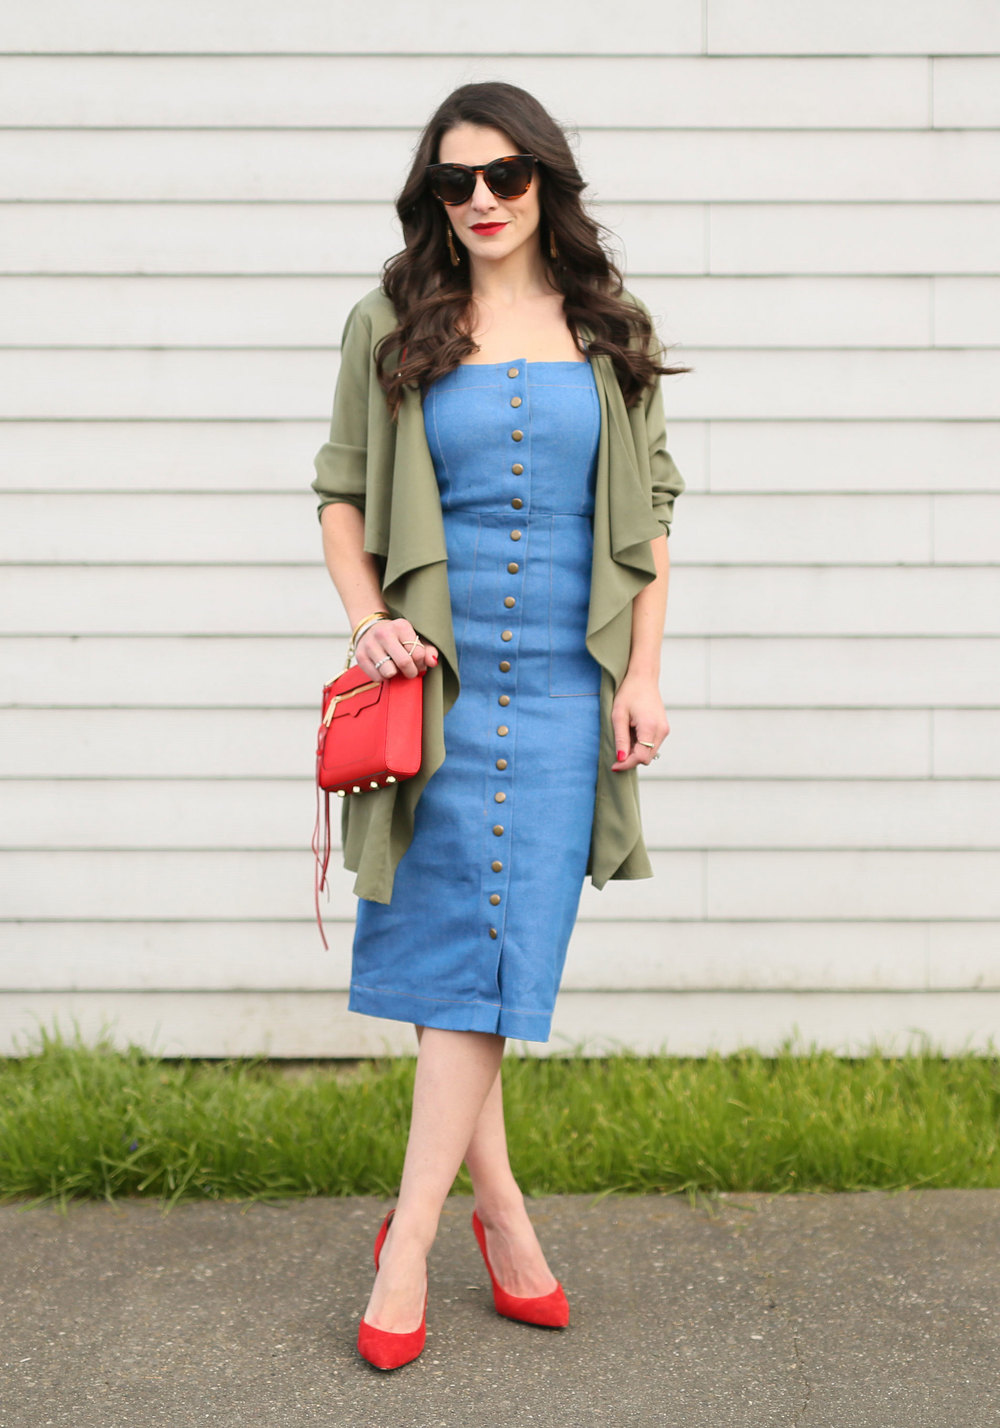 Clayton Candace Dress, Denim Midi Dress, Button-Front Dress, Le Specs Jealous Games Cat Eye Sunglasses, Rebecca Minkoff Avery Crossbody, Red Pumps, Drape Front Jacket